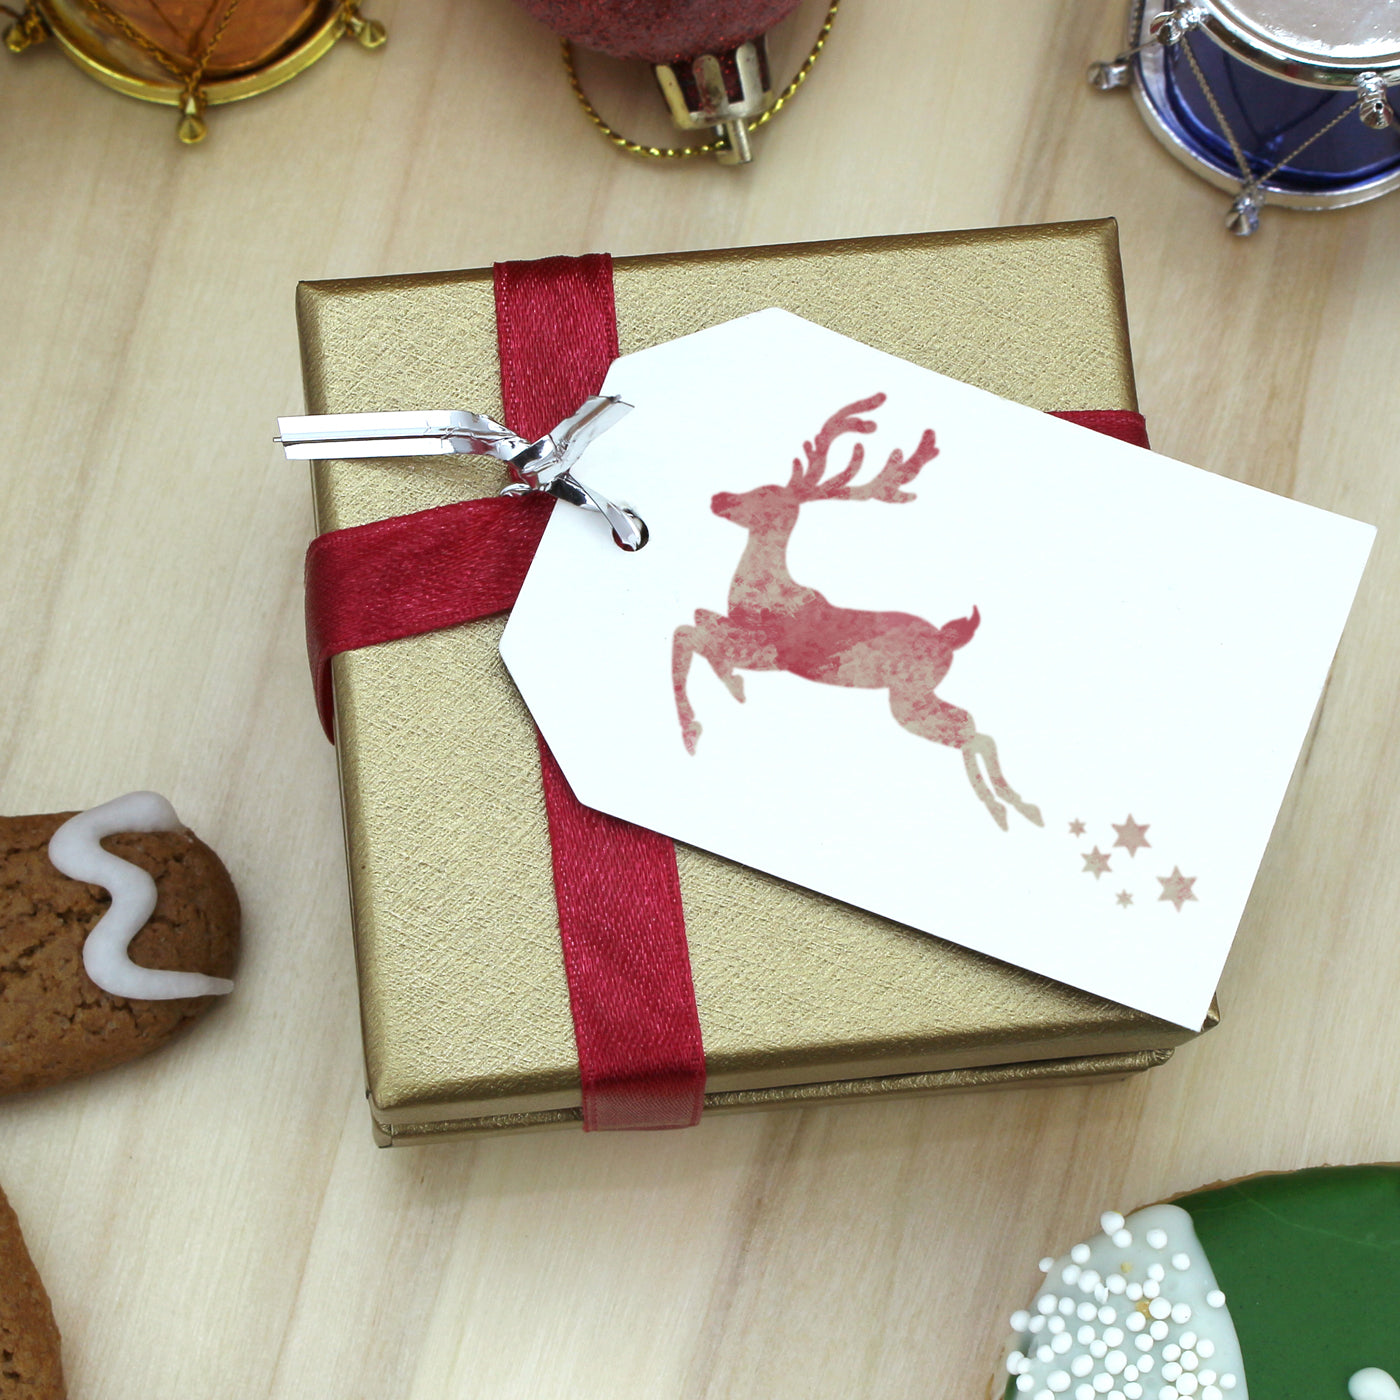 CraftStar Small Reindeer Stencil on Gift Tag